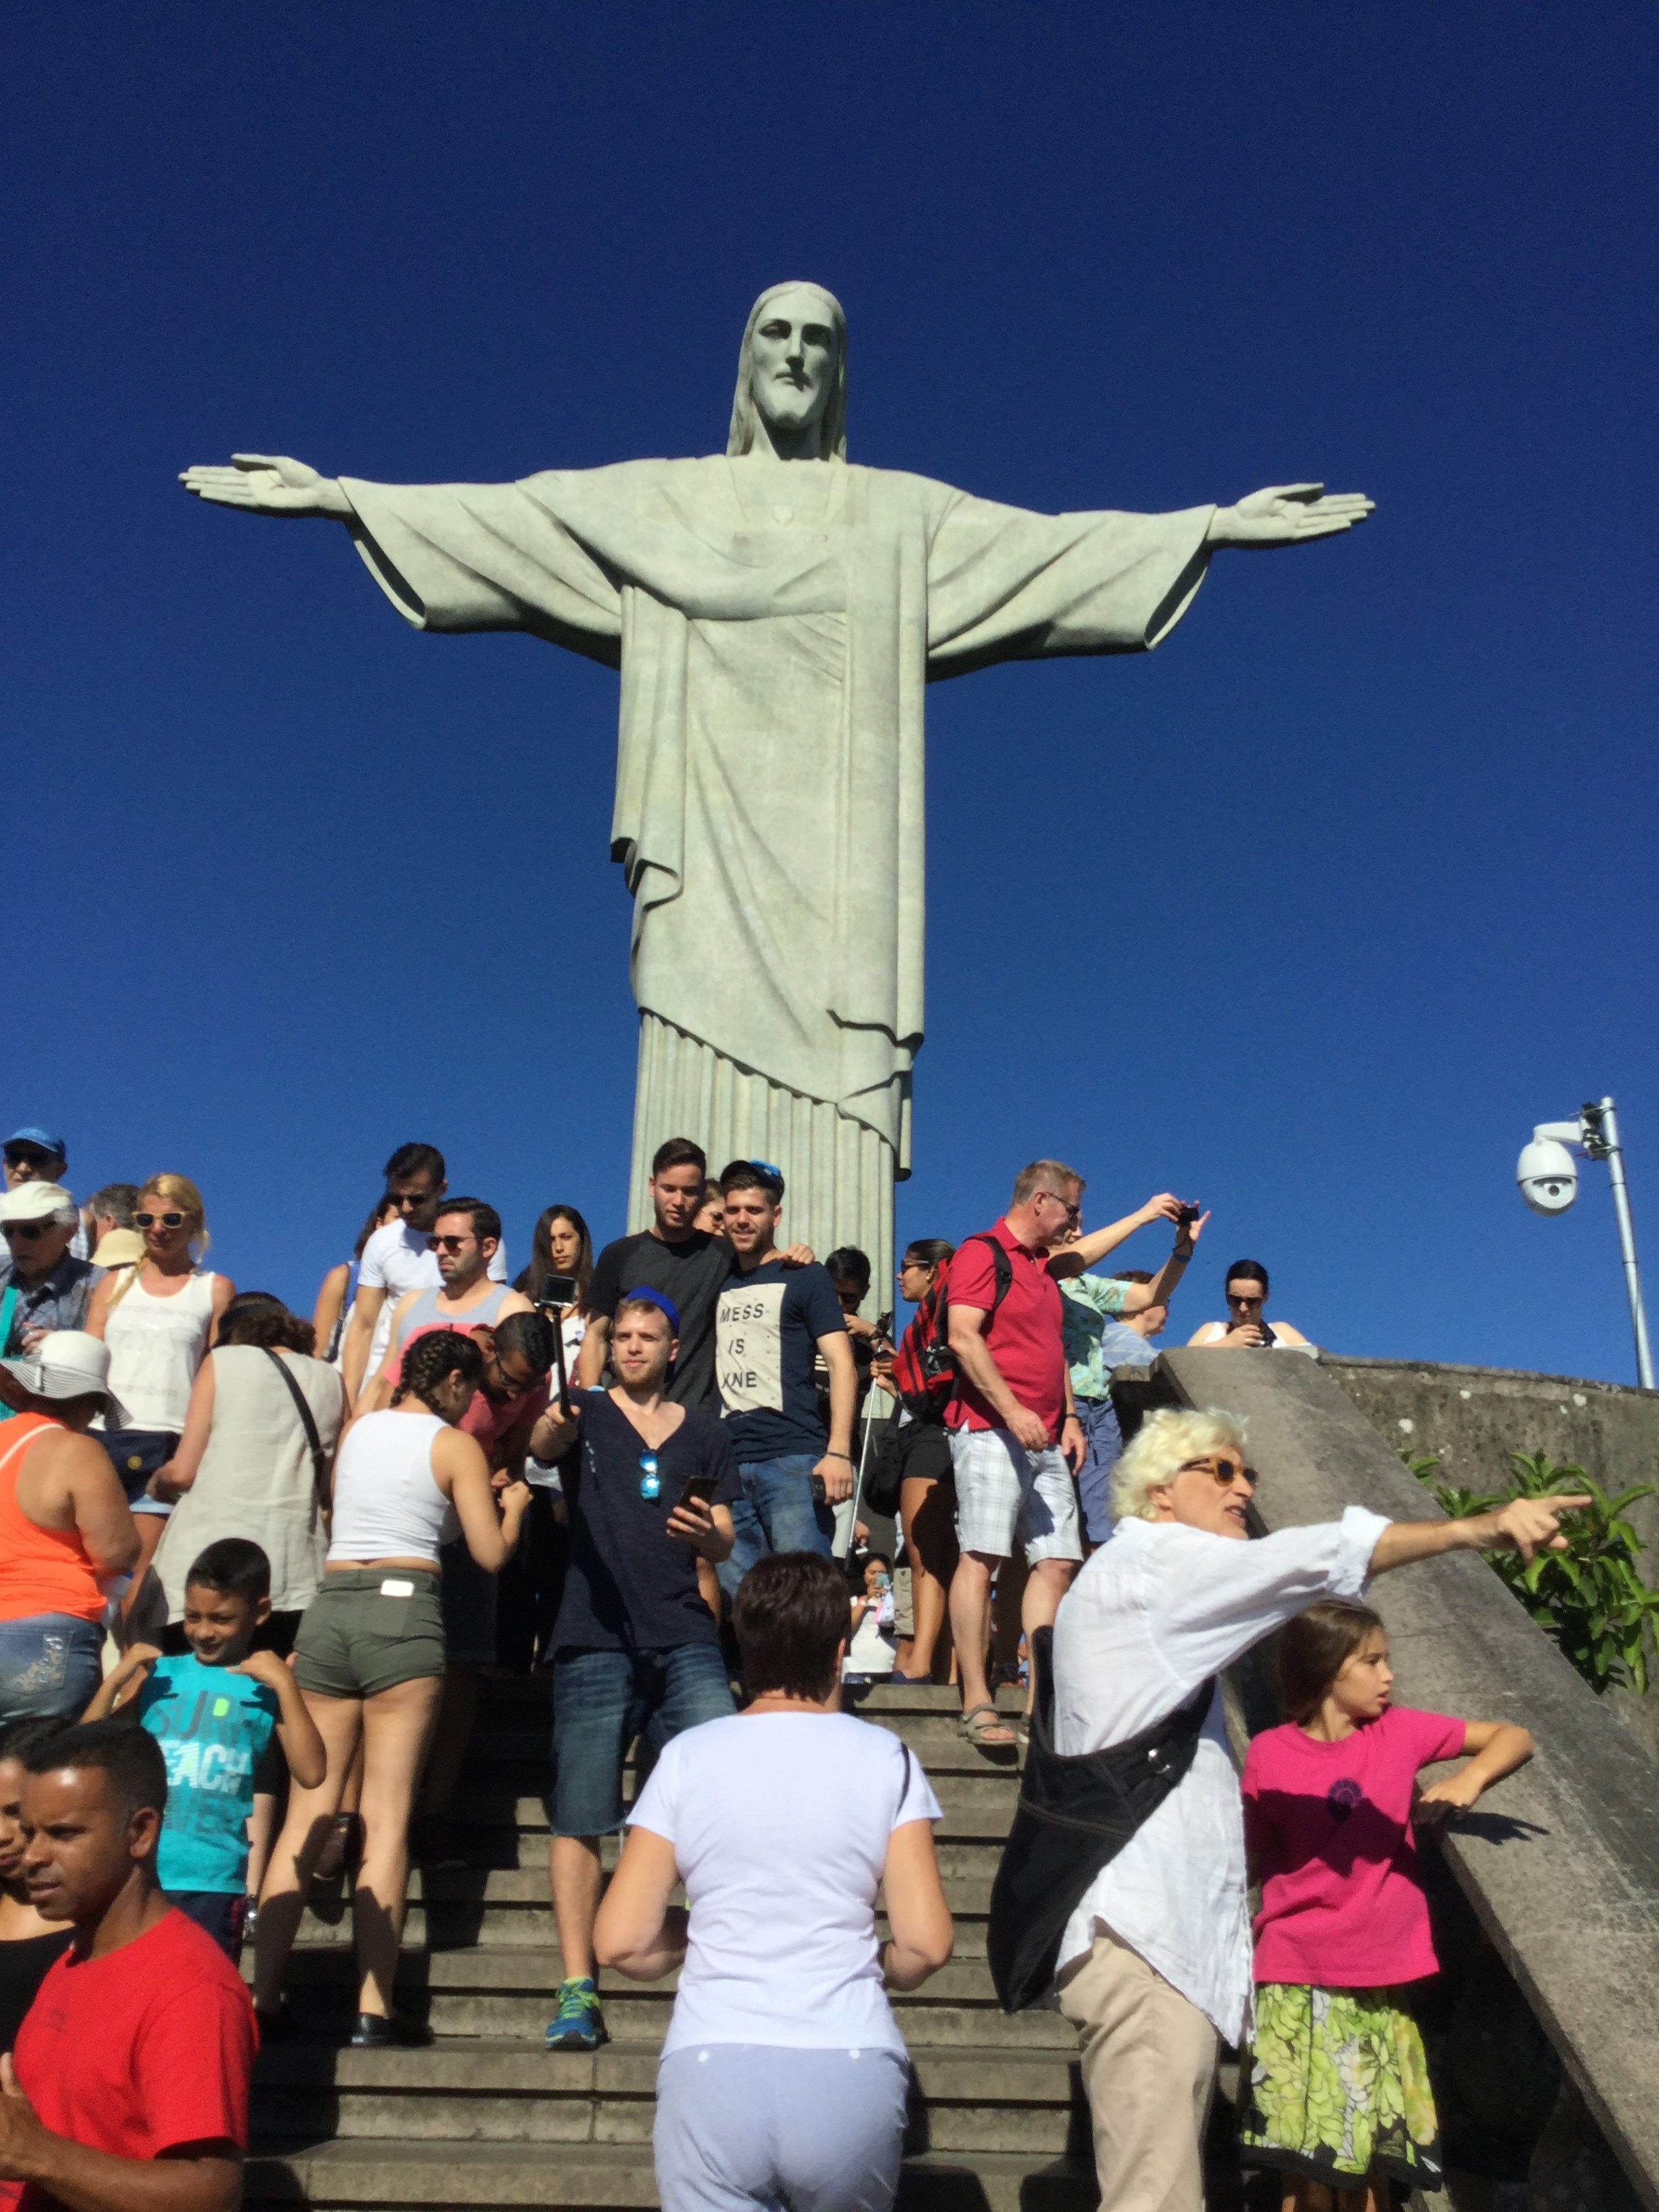 We got there early, it opens at 8 am. The peak soon becomes a mess of people jumbling over each other, selfie sticks everywhere and tour guides trying to keep their flocks in order and within earshot. The thing to do of course is to take a picture with arms outstretched in front of the statue!